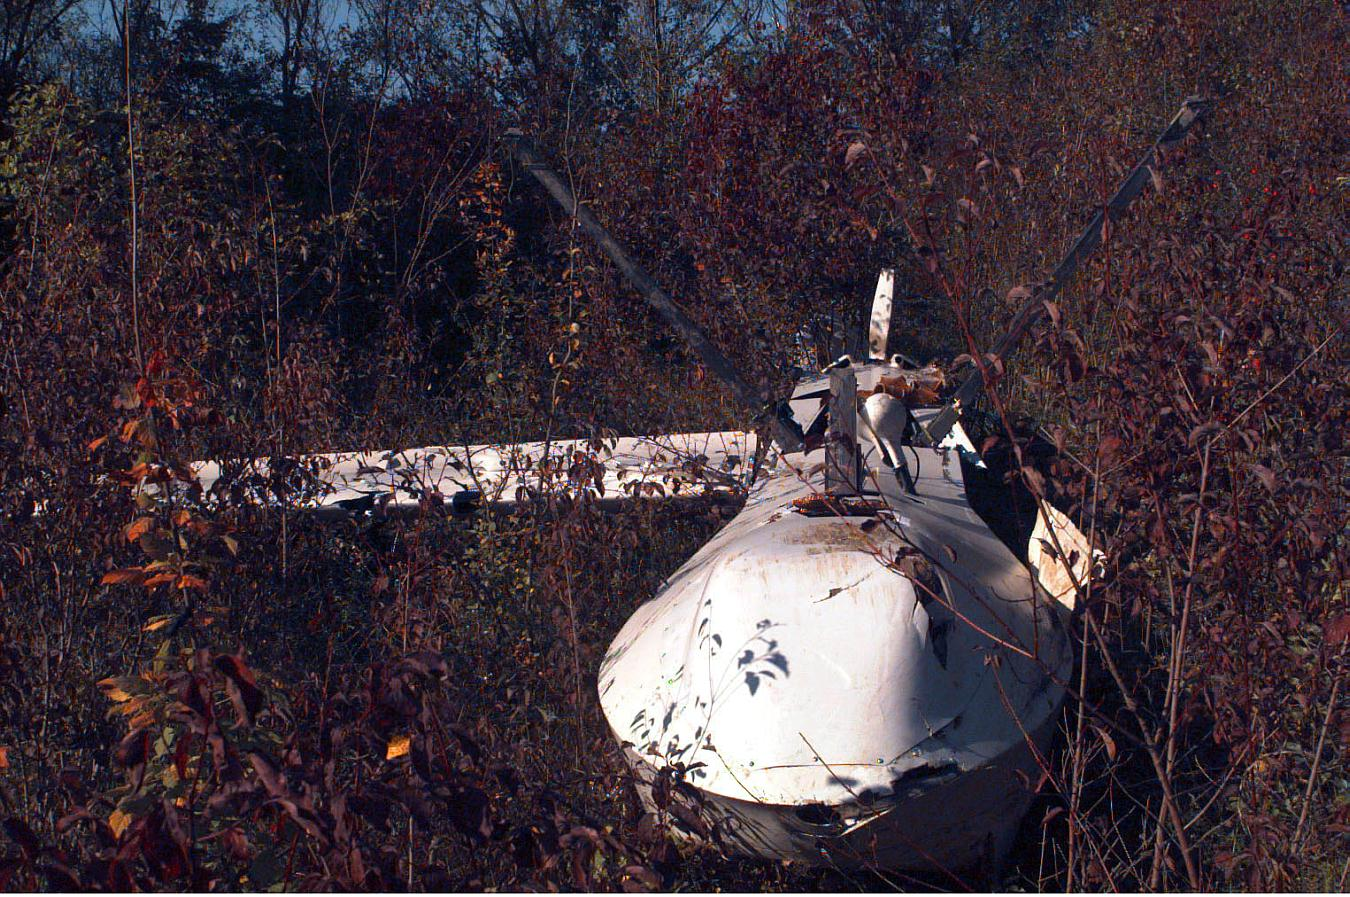 A Close Up Front View Of The Fuselage Section From Wreckage Predator Unmanned Aerial Vehicle UAV Laying On Hillside In Russian Sector